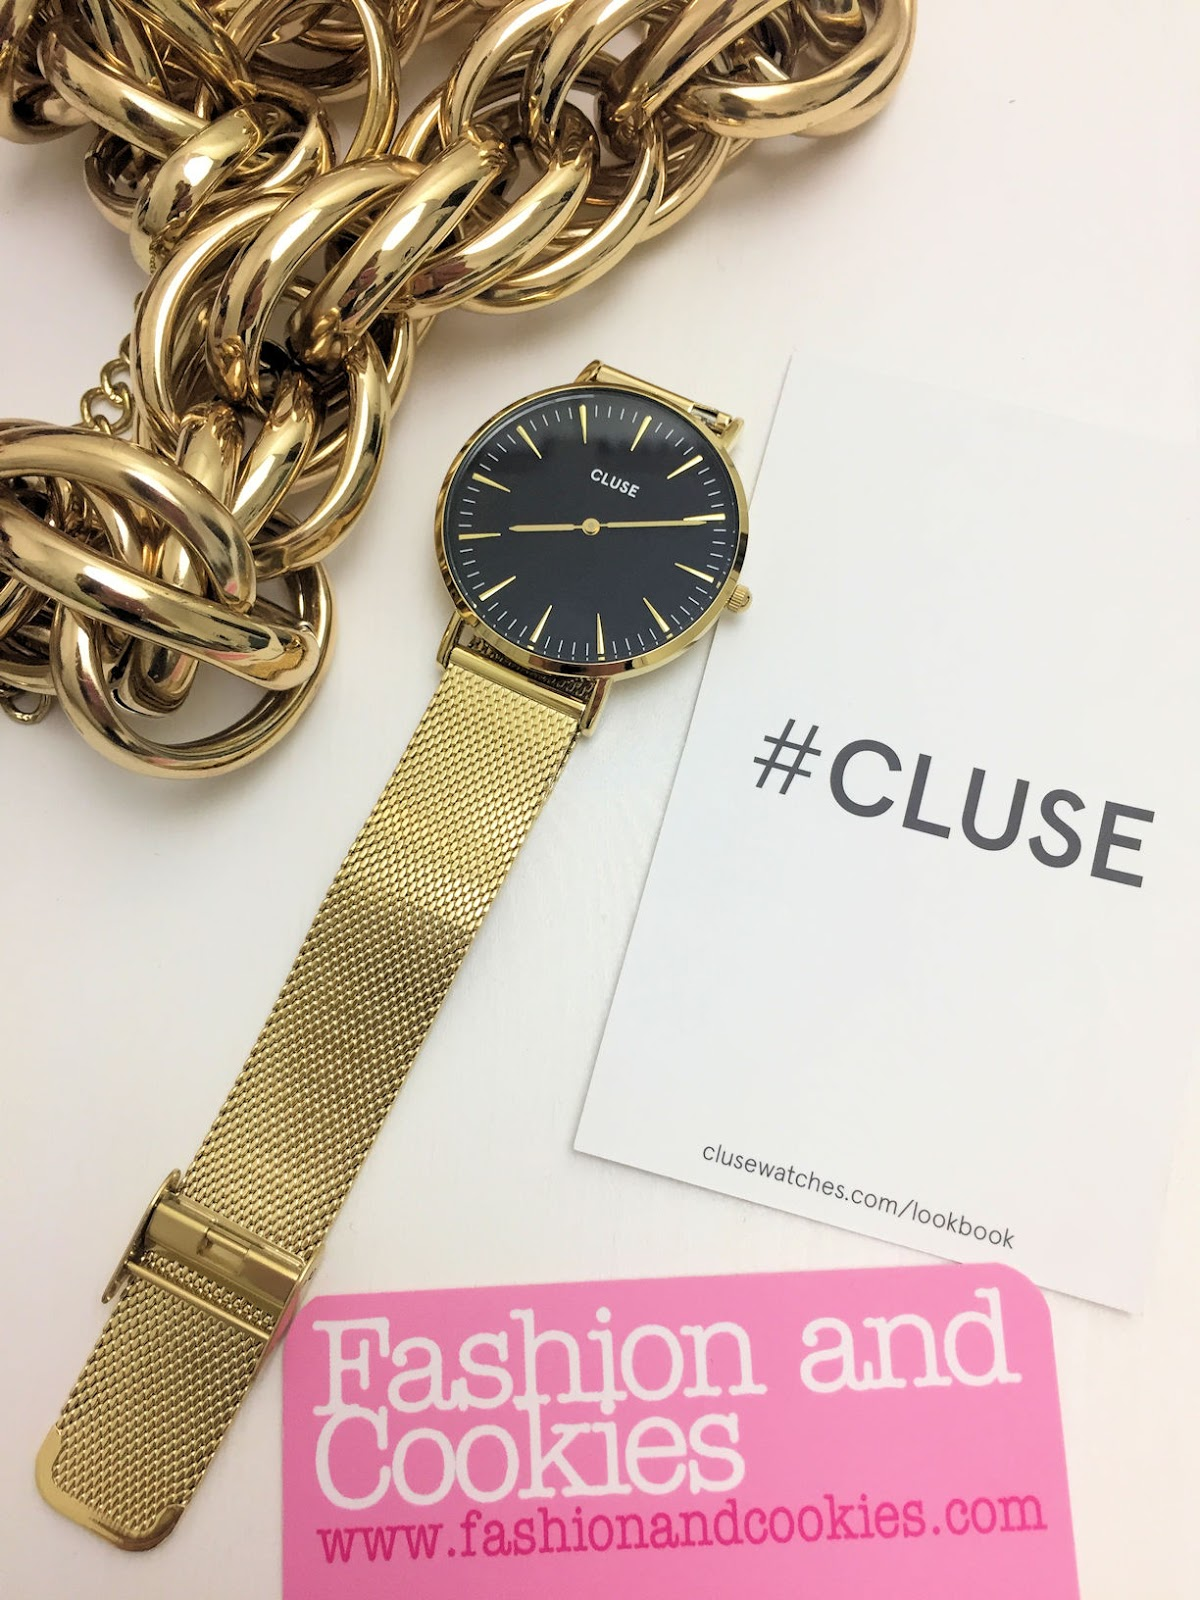 Cluse La Boheme golden watch on Orologio.it on Fashion and Cookies fashion blog, fashion blogger